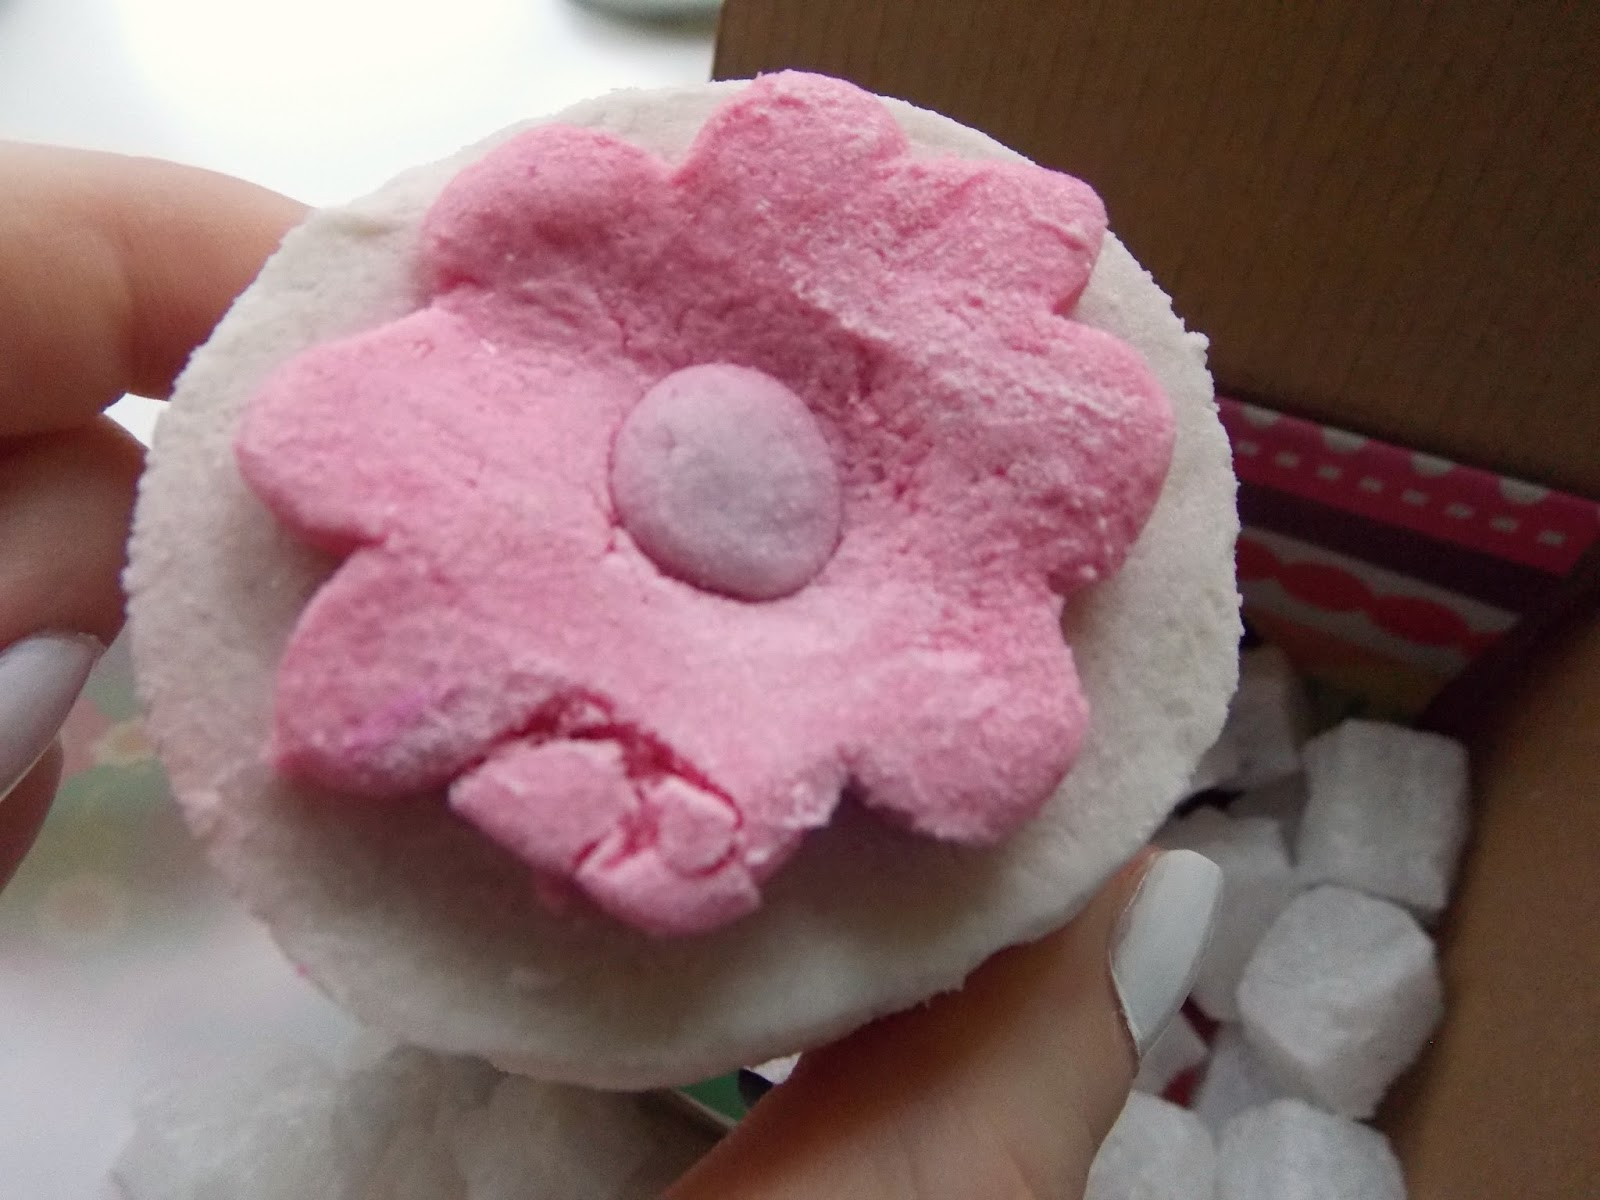 Lush Pop In The Bath Bubble Bar Review and Image